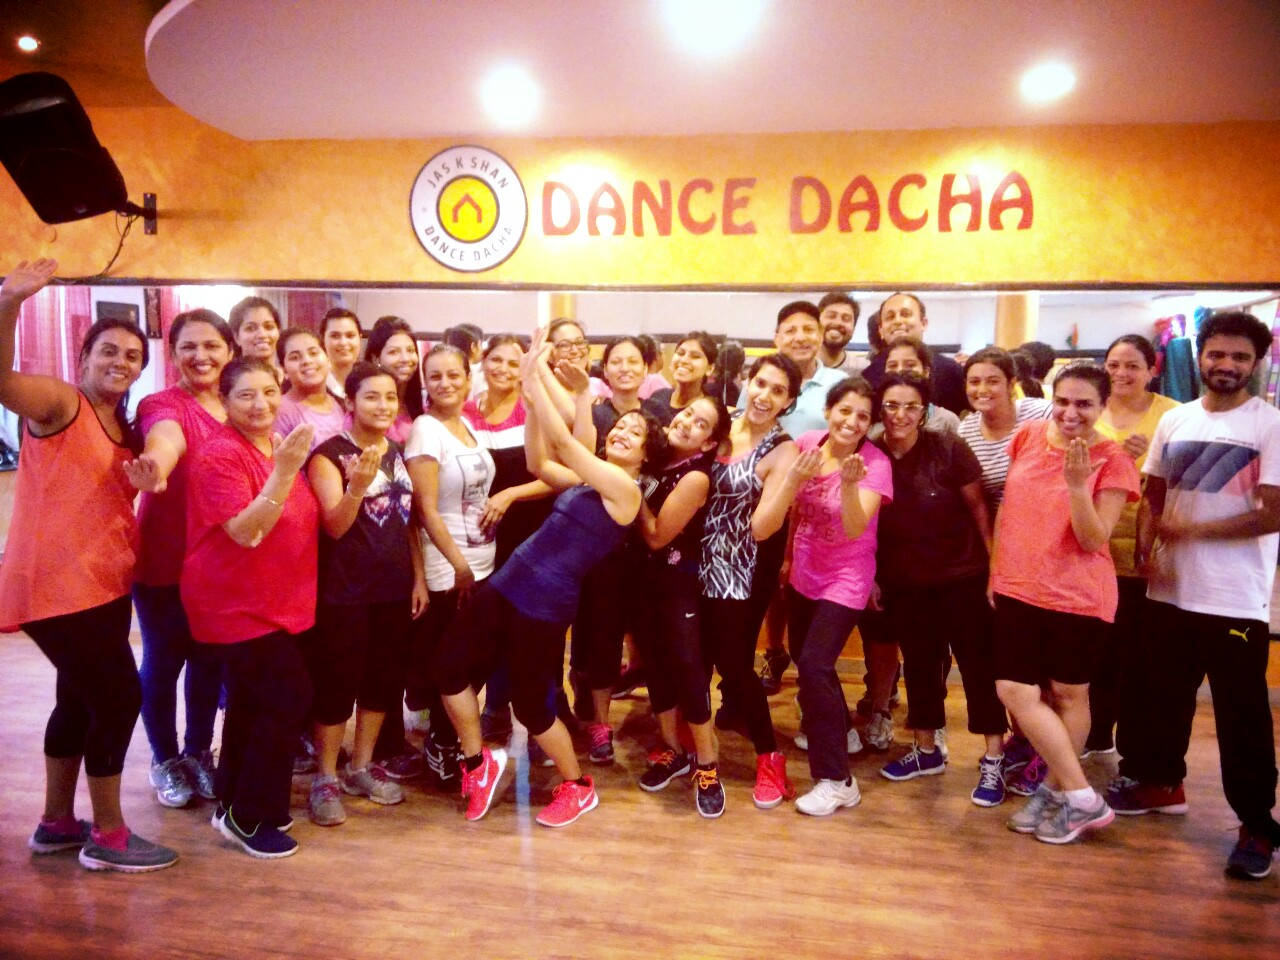 Jas k Shan Dance Dacha Chandigarh - Zumba Fitness Belly Dance Bollywood Punjabi Folk Latin Salsa Modern Contemporary Ballet Kickboxing Aerobics More